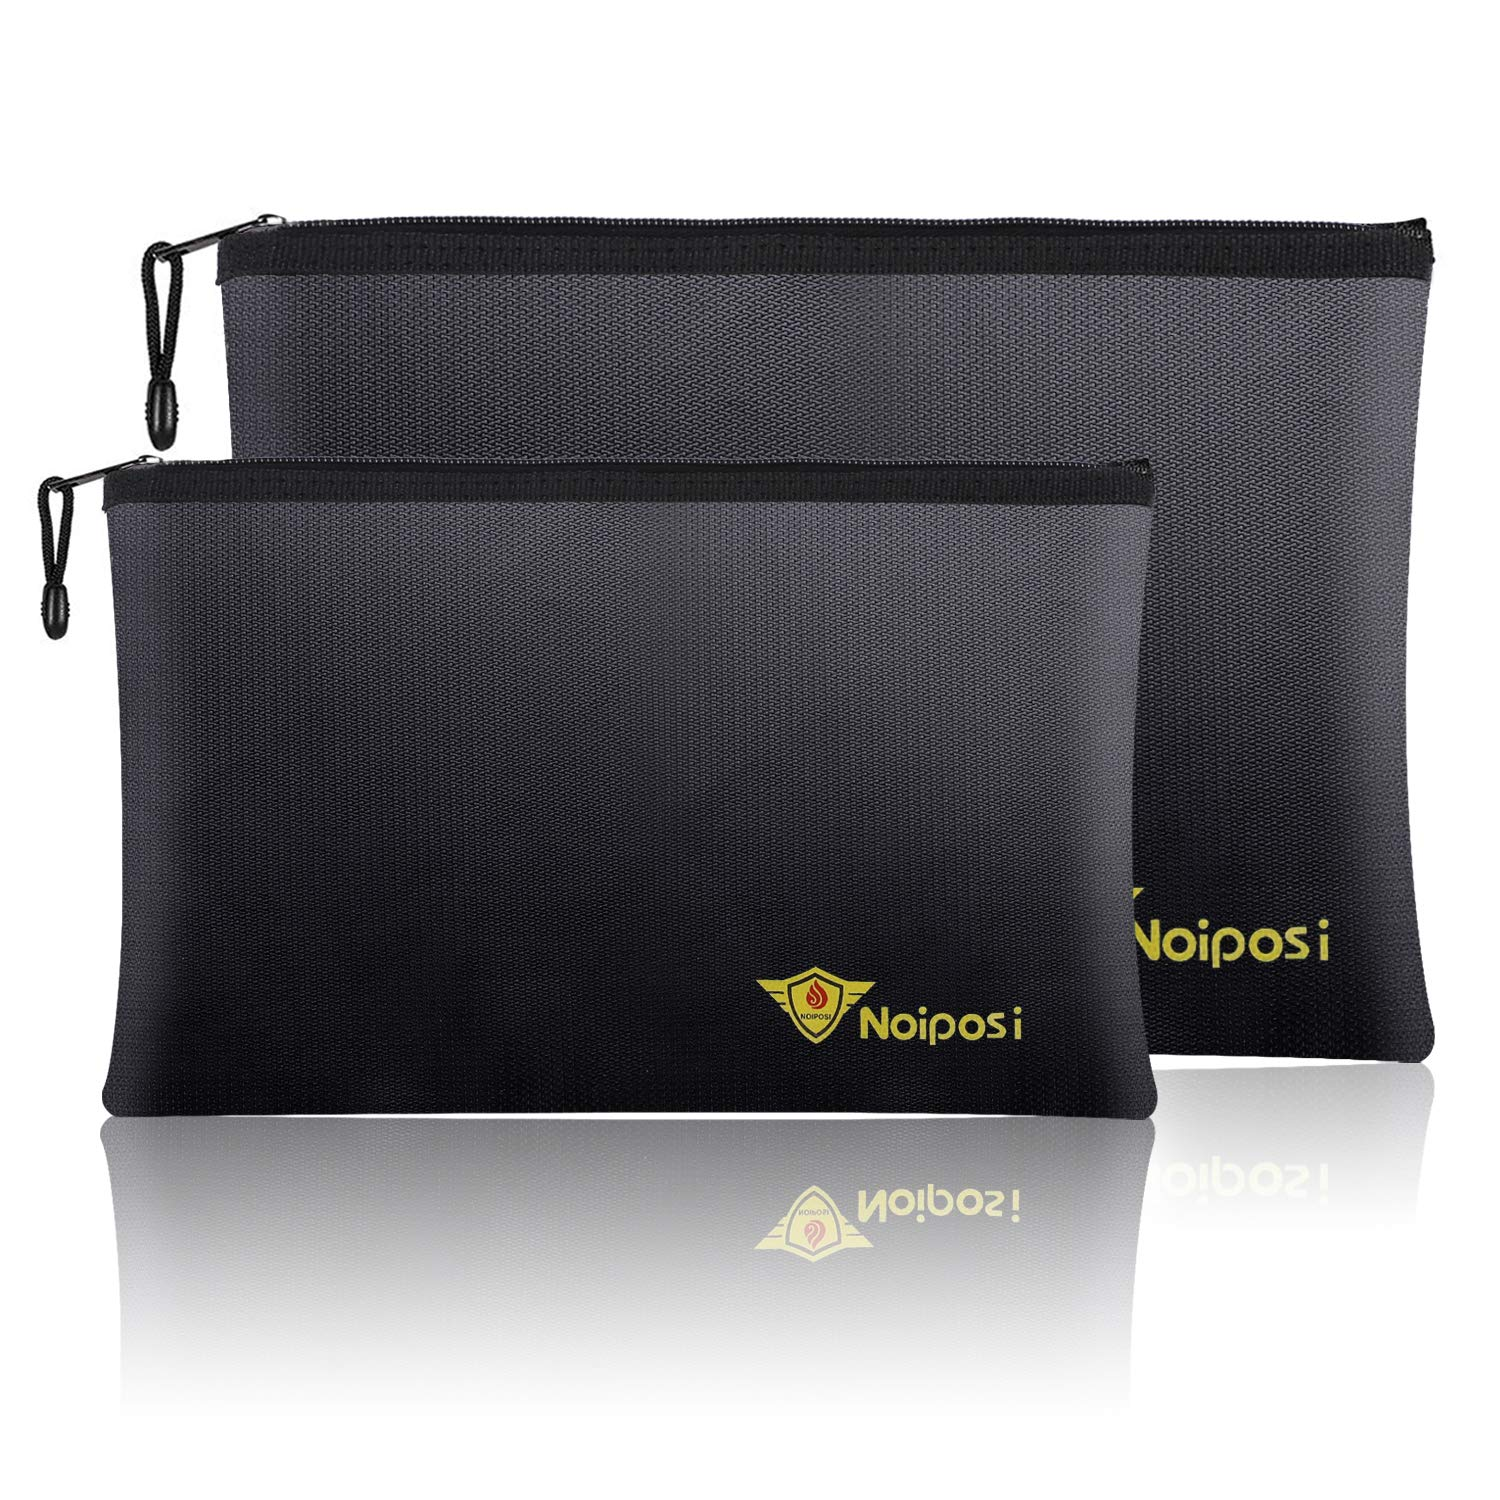 Noiposi Fireproof Document Bags,13.4''x9.4'' Waterproof and Fireproof Bag for Documents and 10.6''x6.7'' Fireproof Money Bag with Zipper,Silicone Fire Safe Storage Pouch for Documents,Money and Cash by Noiposi